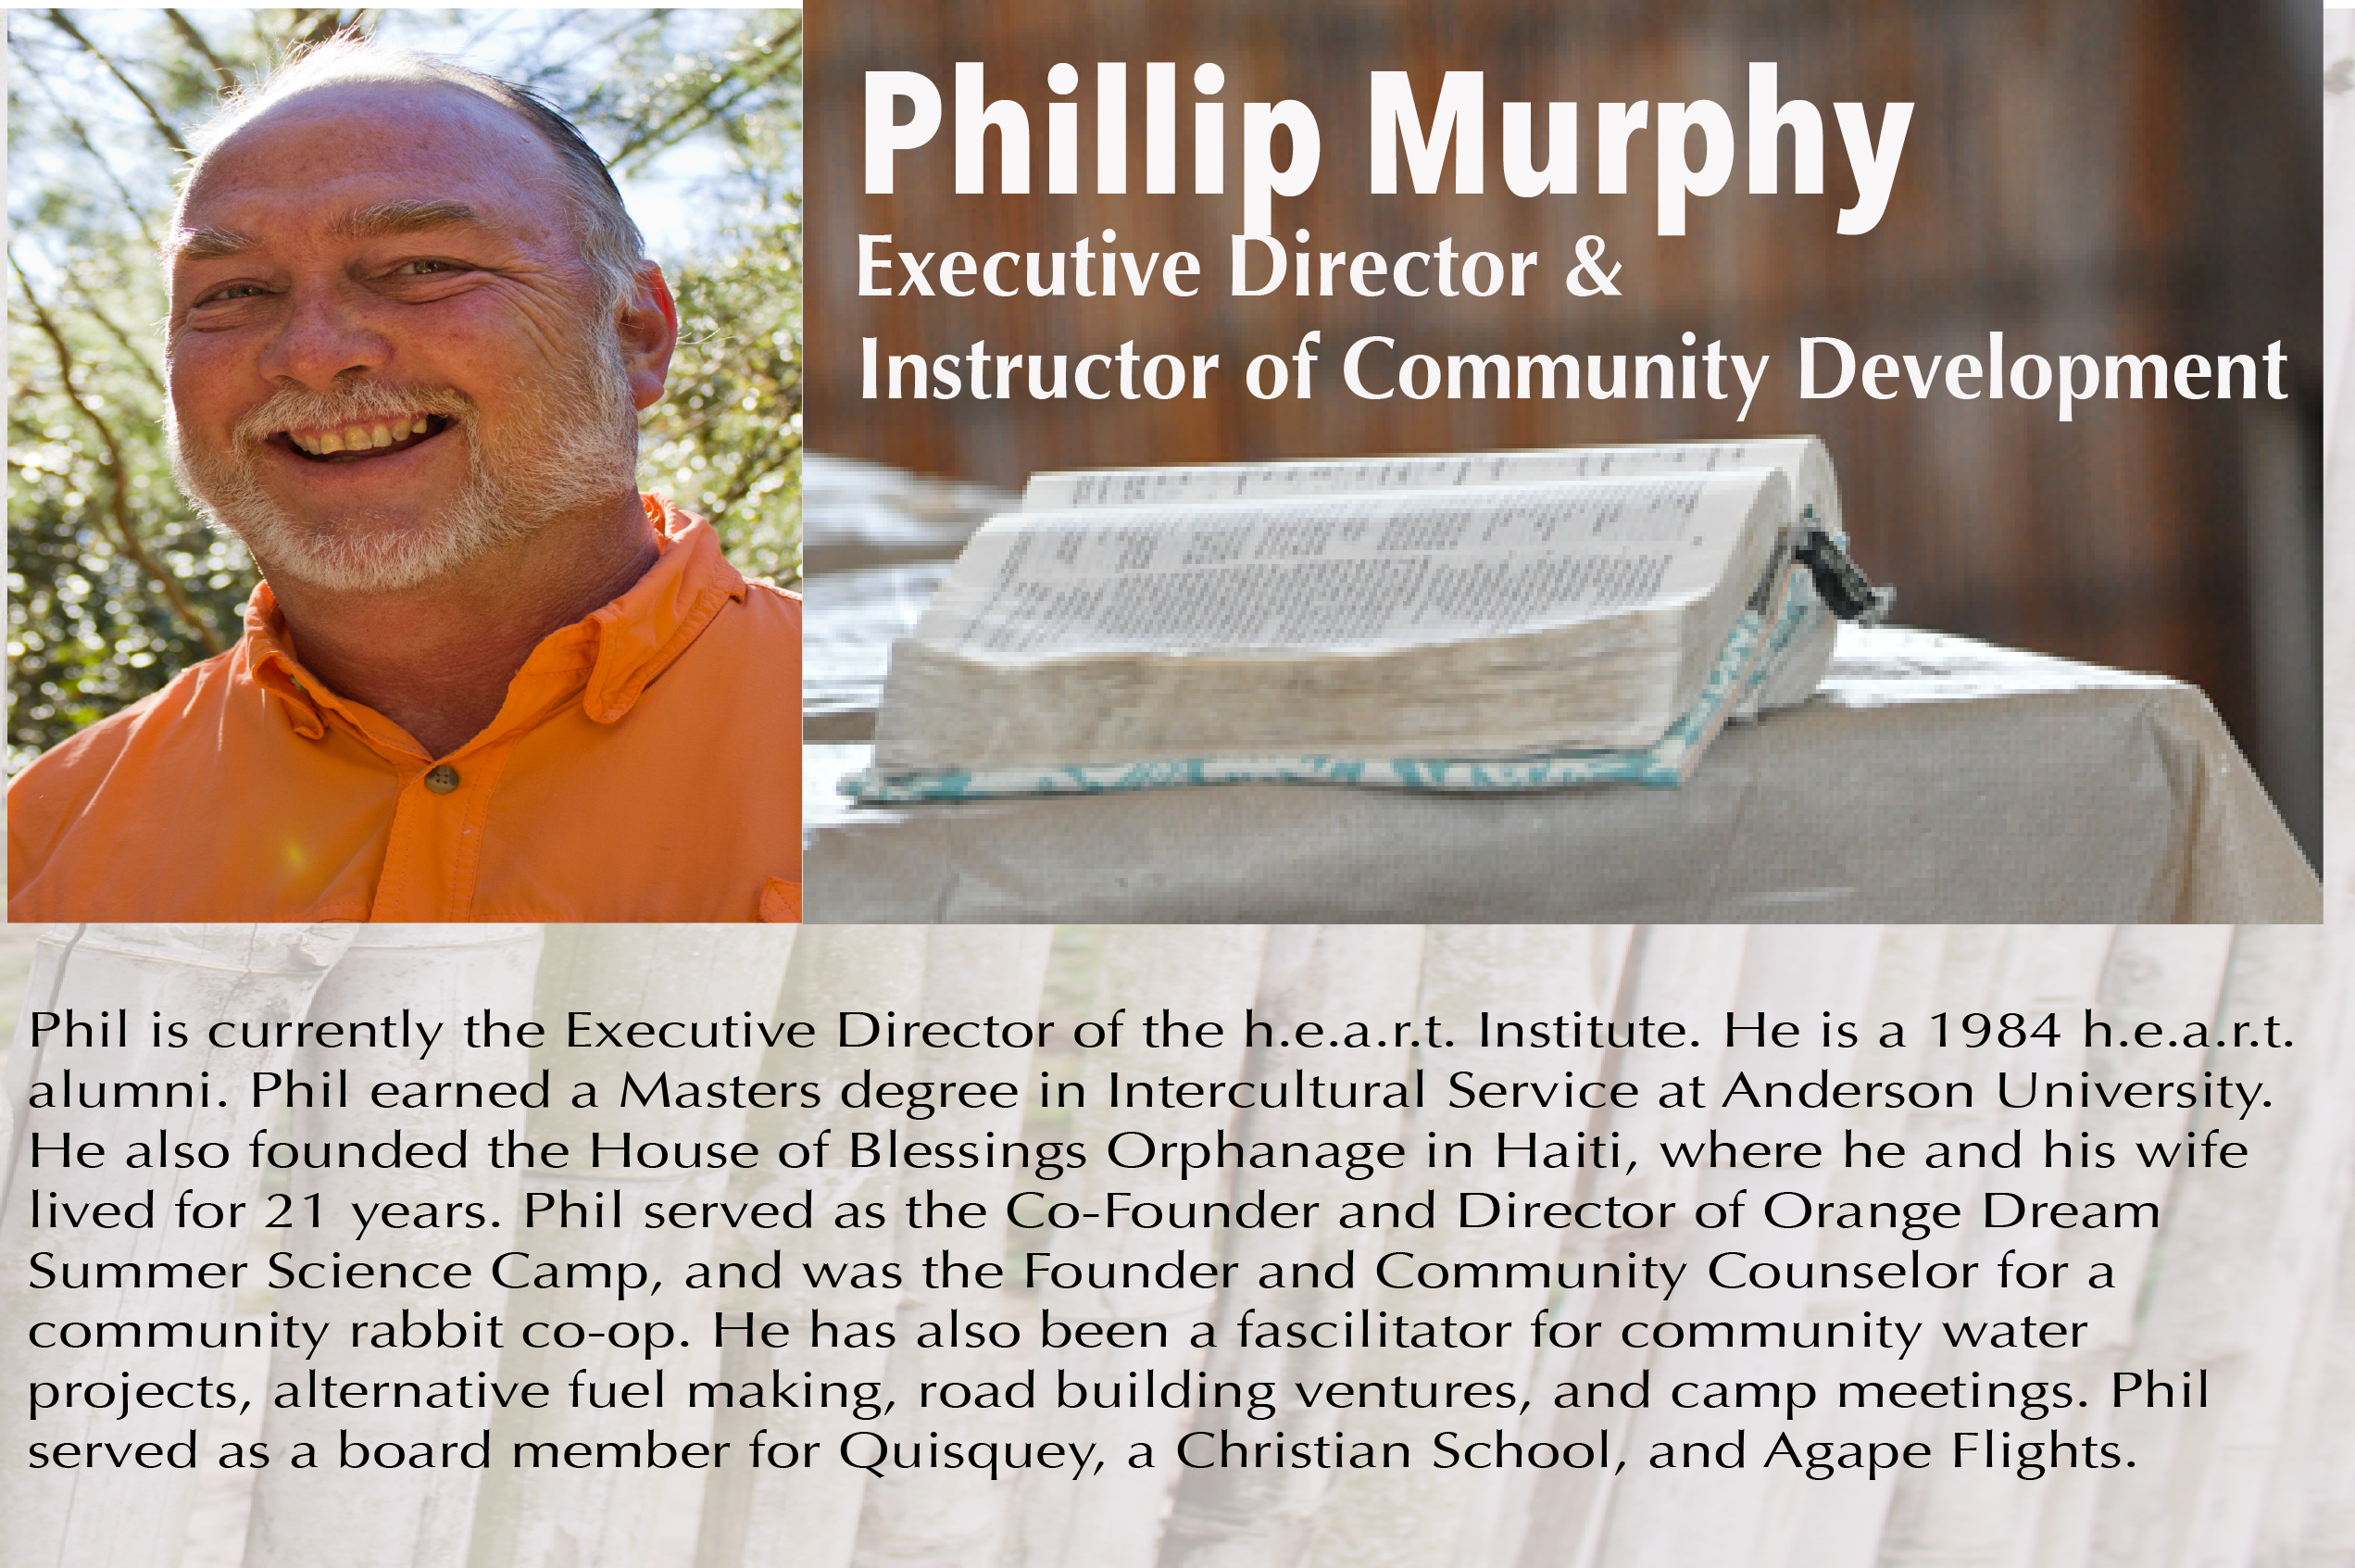 Phil Murphy - Executive Directior - HEART Institute - Central Florida, Lake Wales, Florida - Sustainability Training - Missionary Training